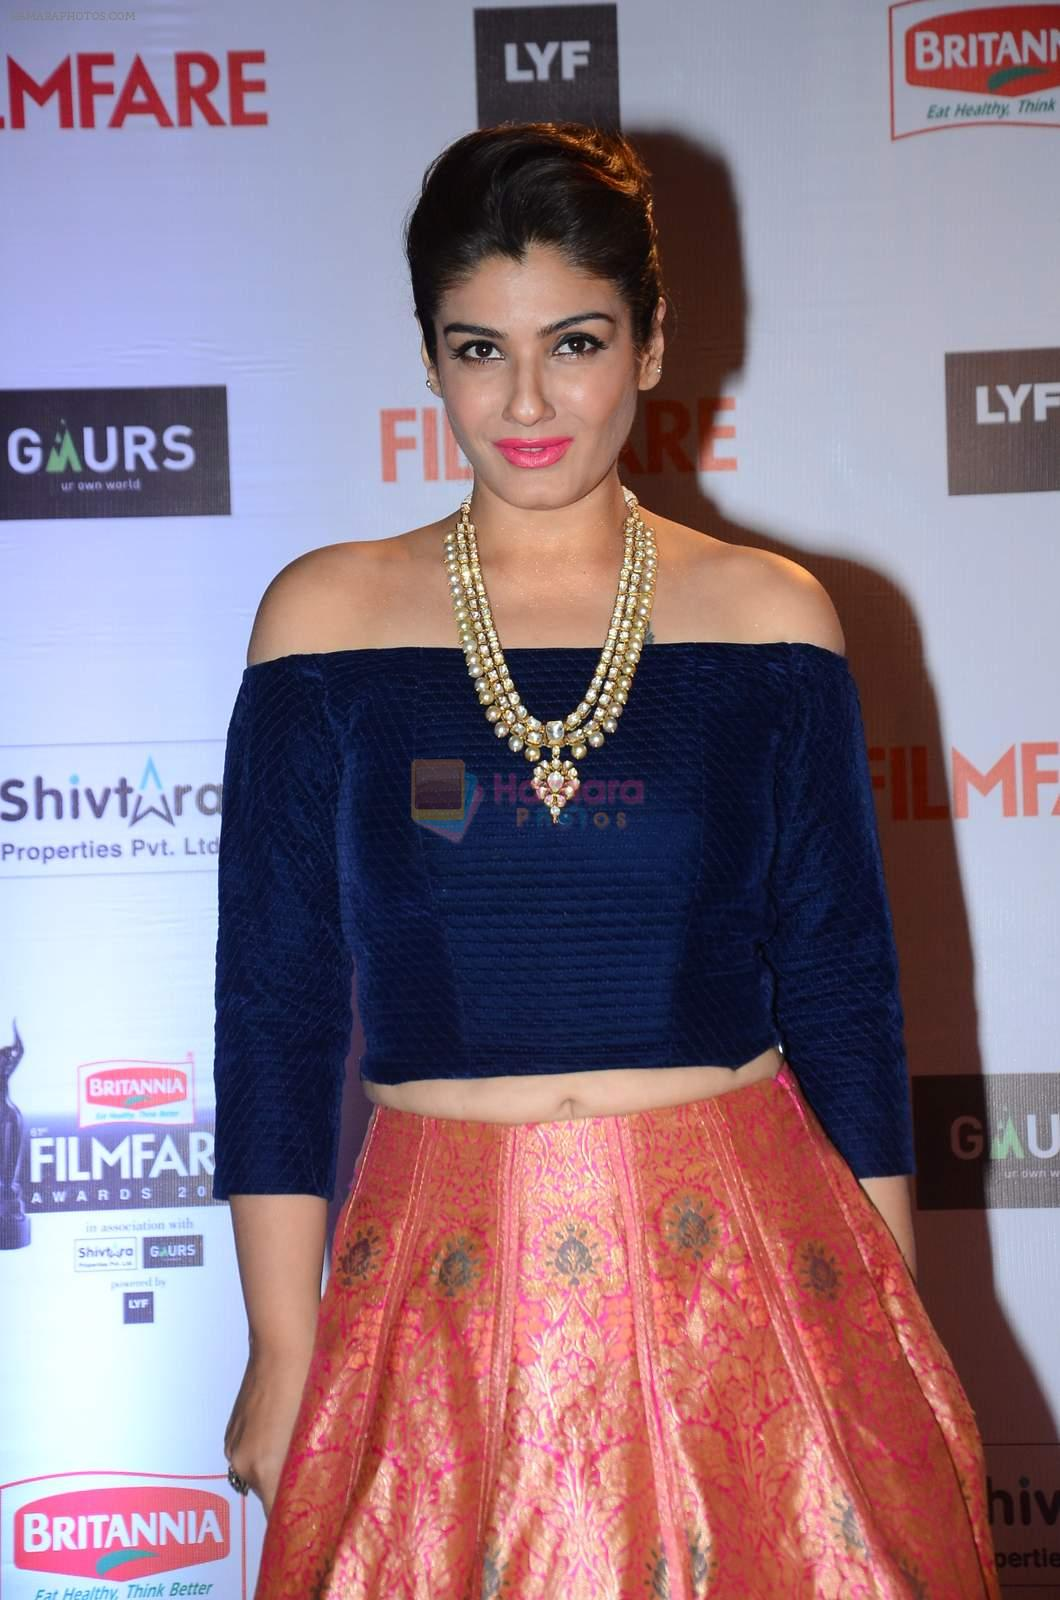 Raveena Tandon at Filmfare Awards 2016 on 15th Jan 2016